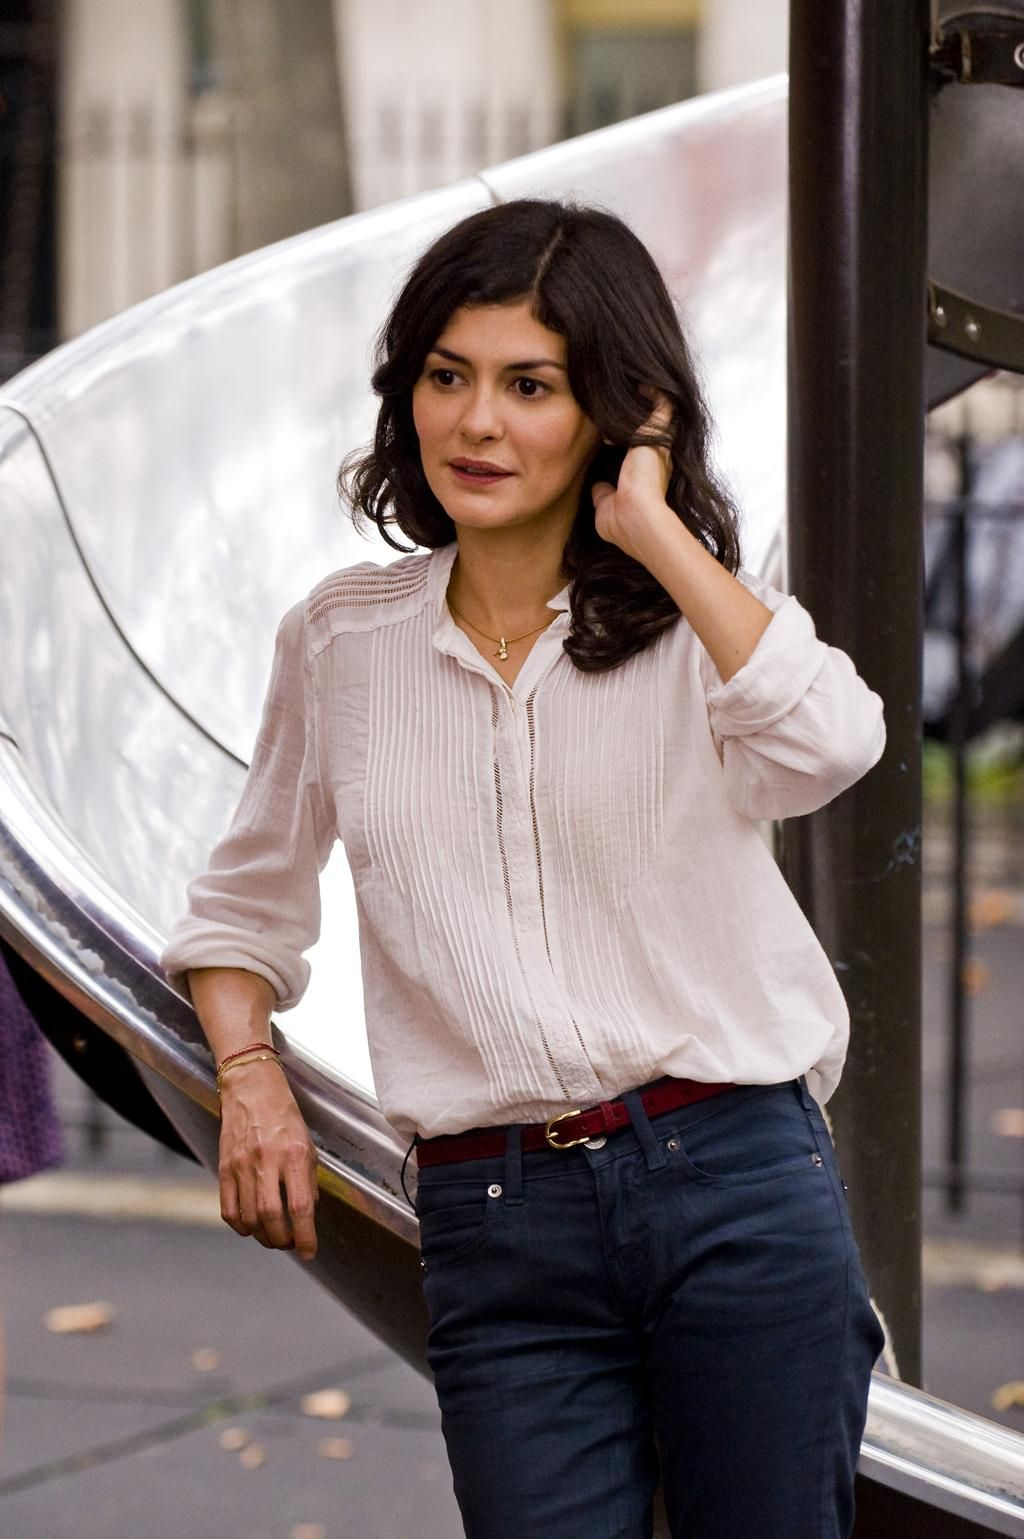 Audrey Tautou French Girl Style f551882a93